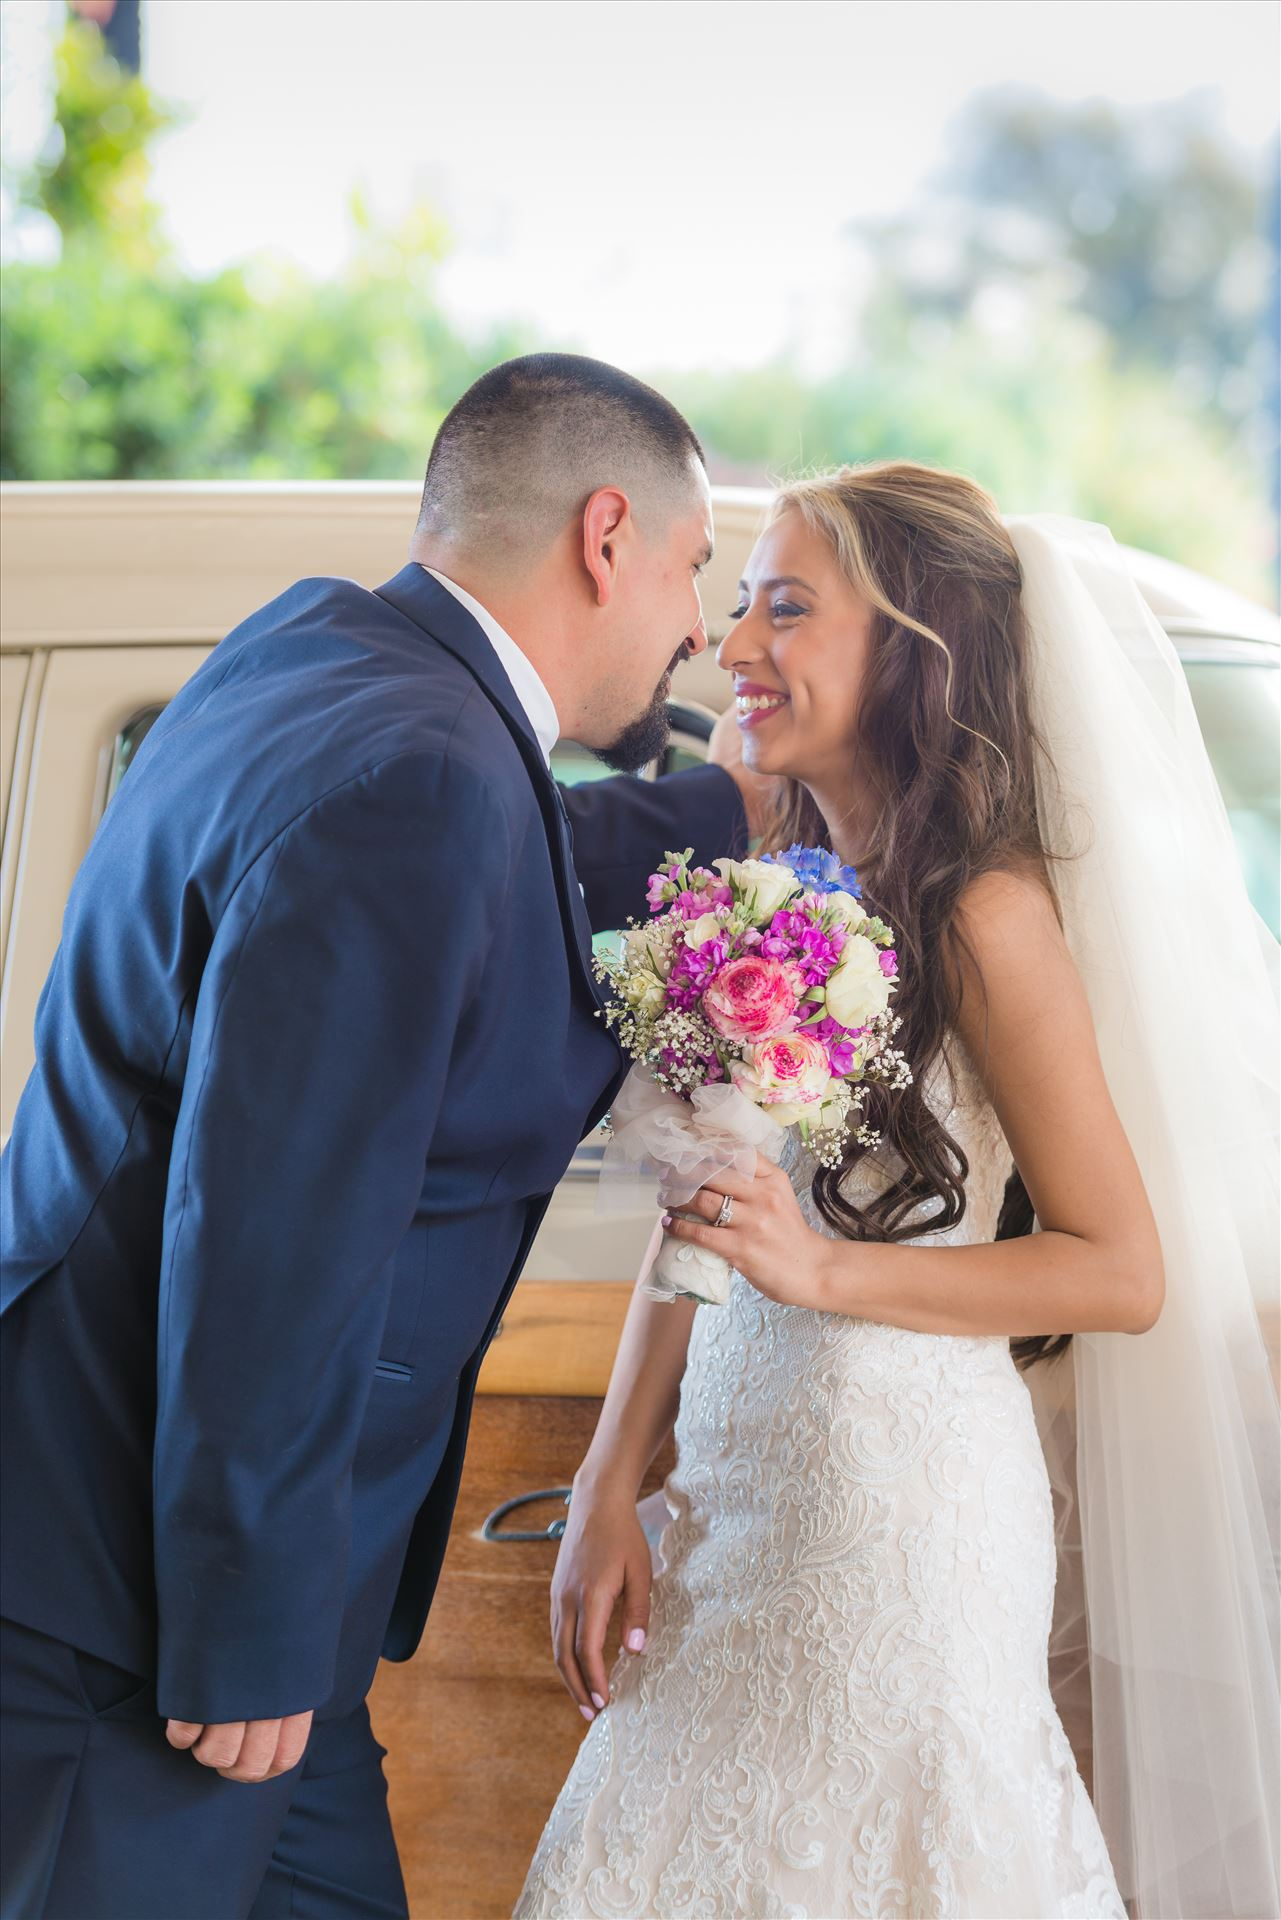 Kimpton Goodland Hotel Santa Barbara Goleta California Bride and Groom by Car -  by Sarah Williams